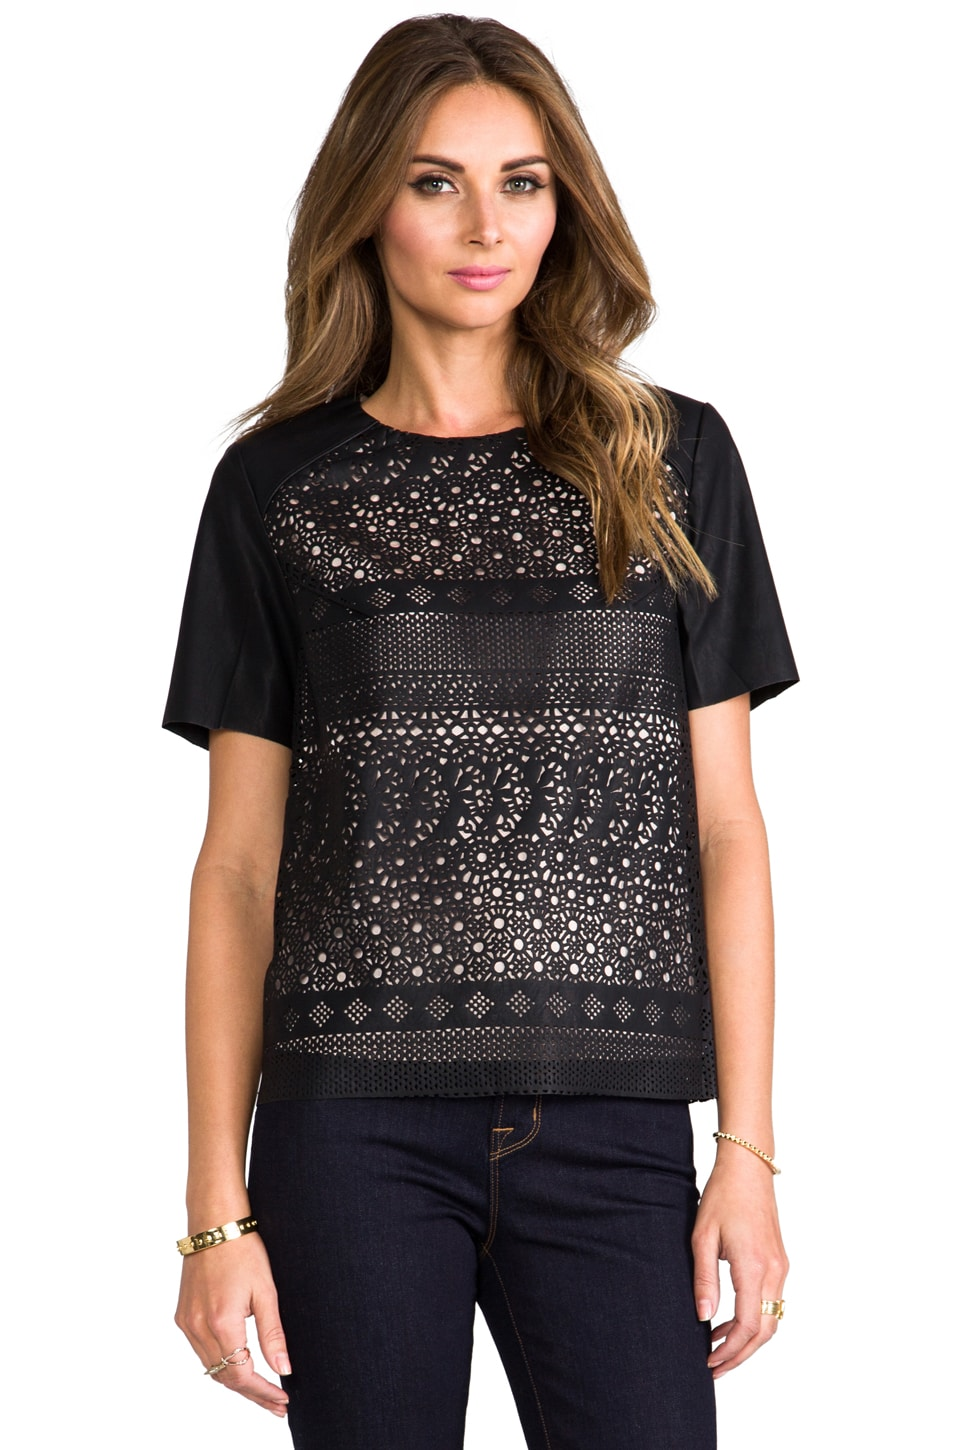 Dolce Vita Adabella Laser Cut Faux Leather Top in Black